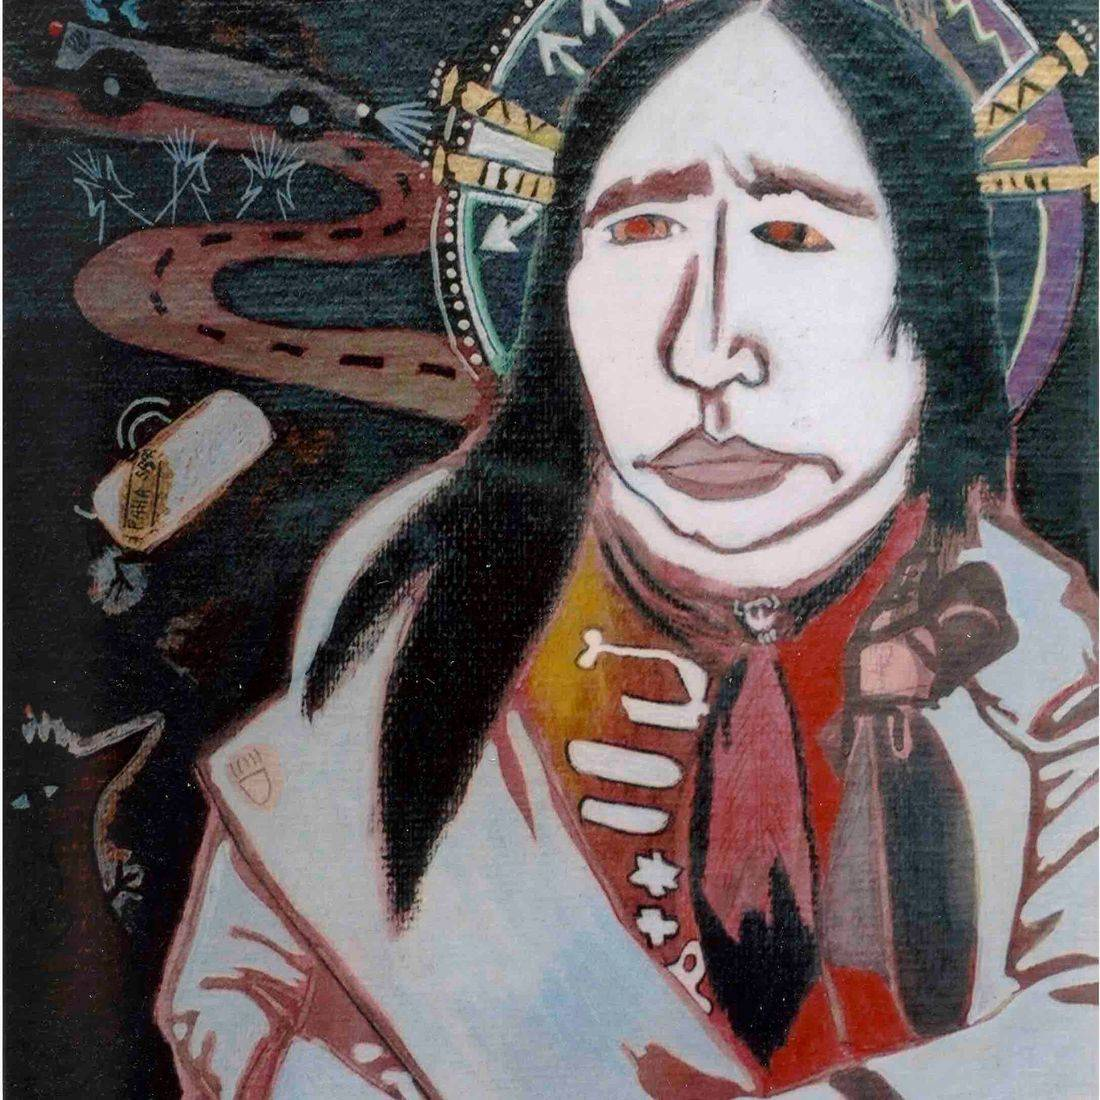 Crazy Horse, Hitchhiking, Indigenous People, Indian Chief, Custer's Last Stand, Sioux